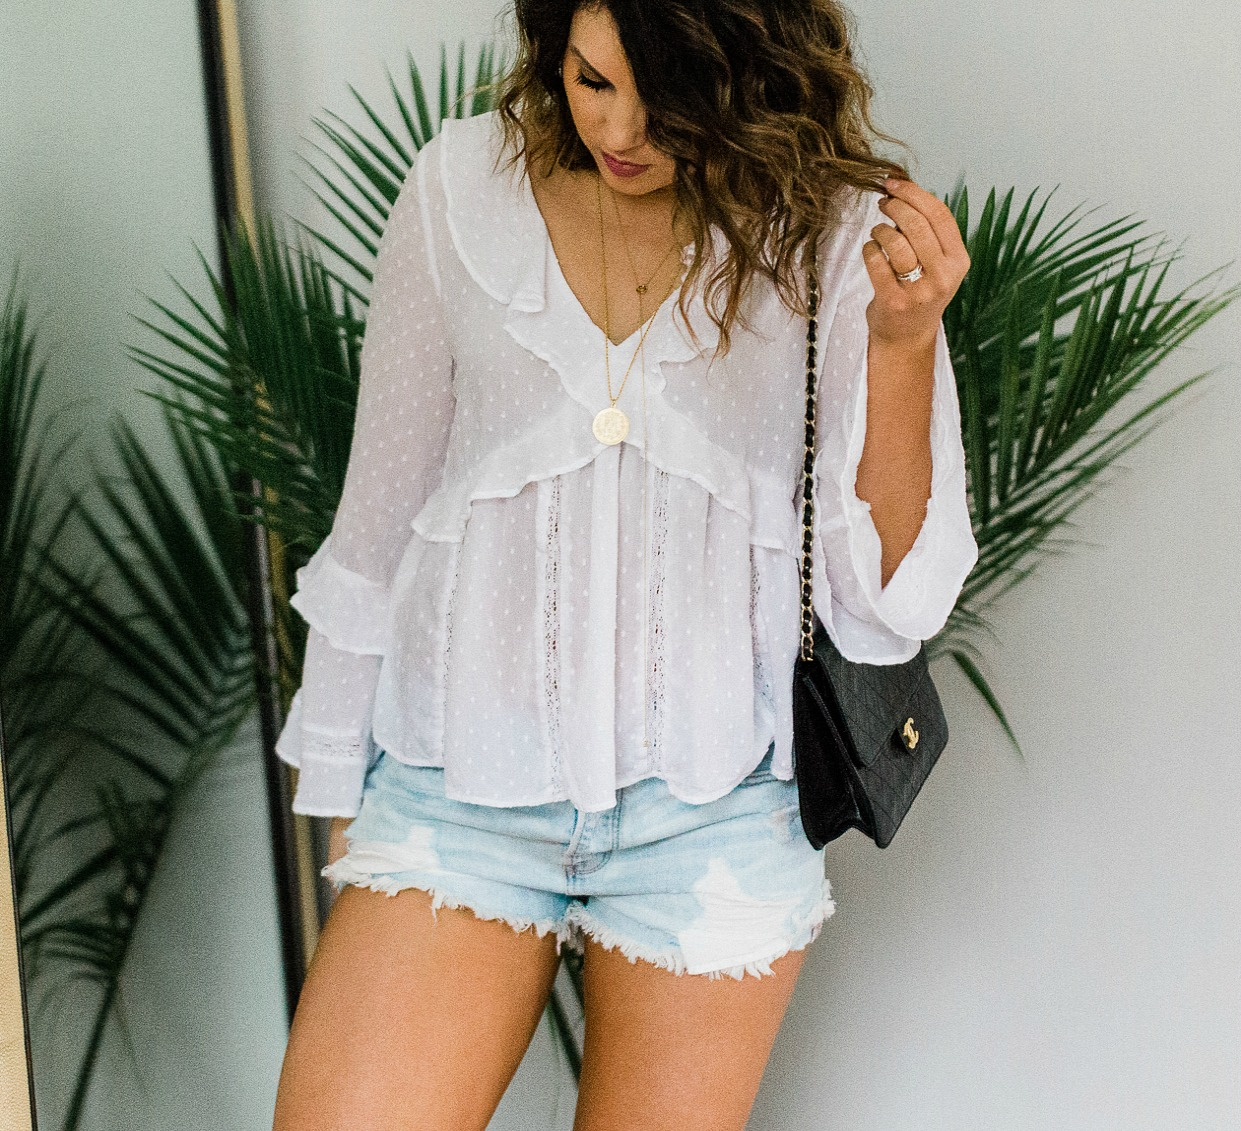 ae boho white blouse, ae tomgirl shorts, boho white blouse, xo samantha brooke, sam brooke photo, lifestyle blogger, white blouse shorts outfit, white blouse cutoffs outfit